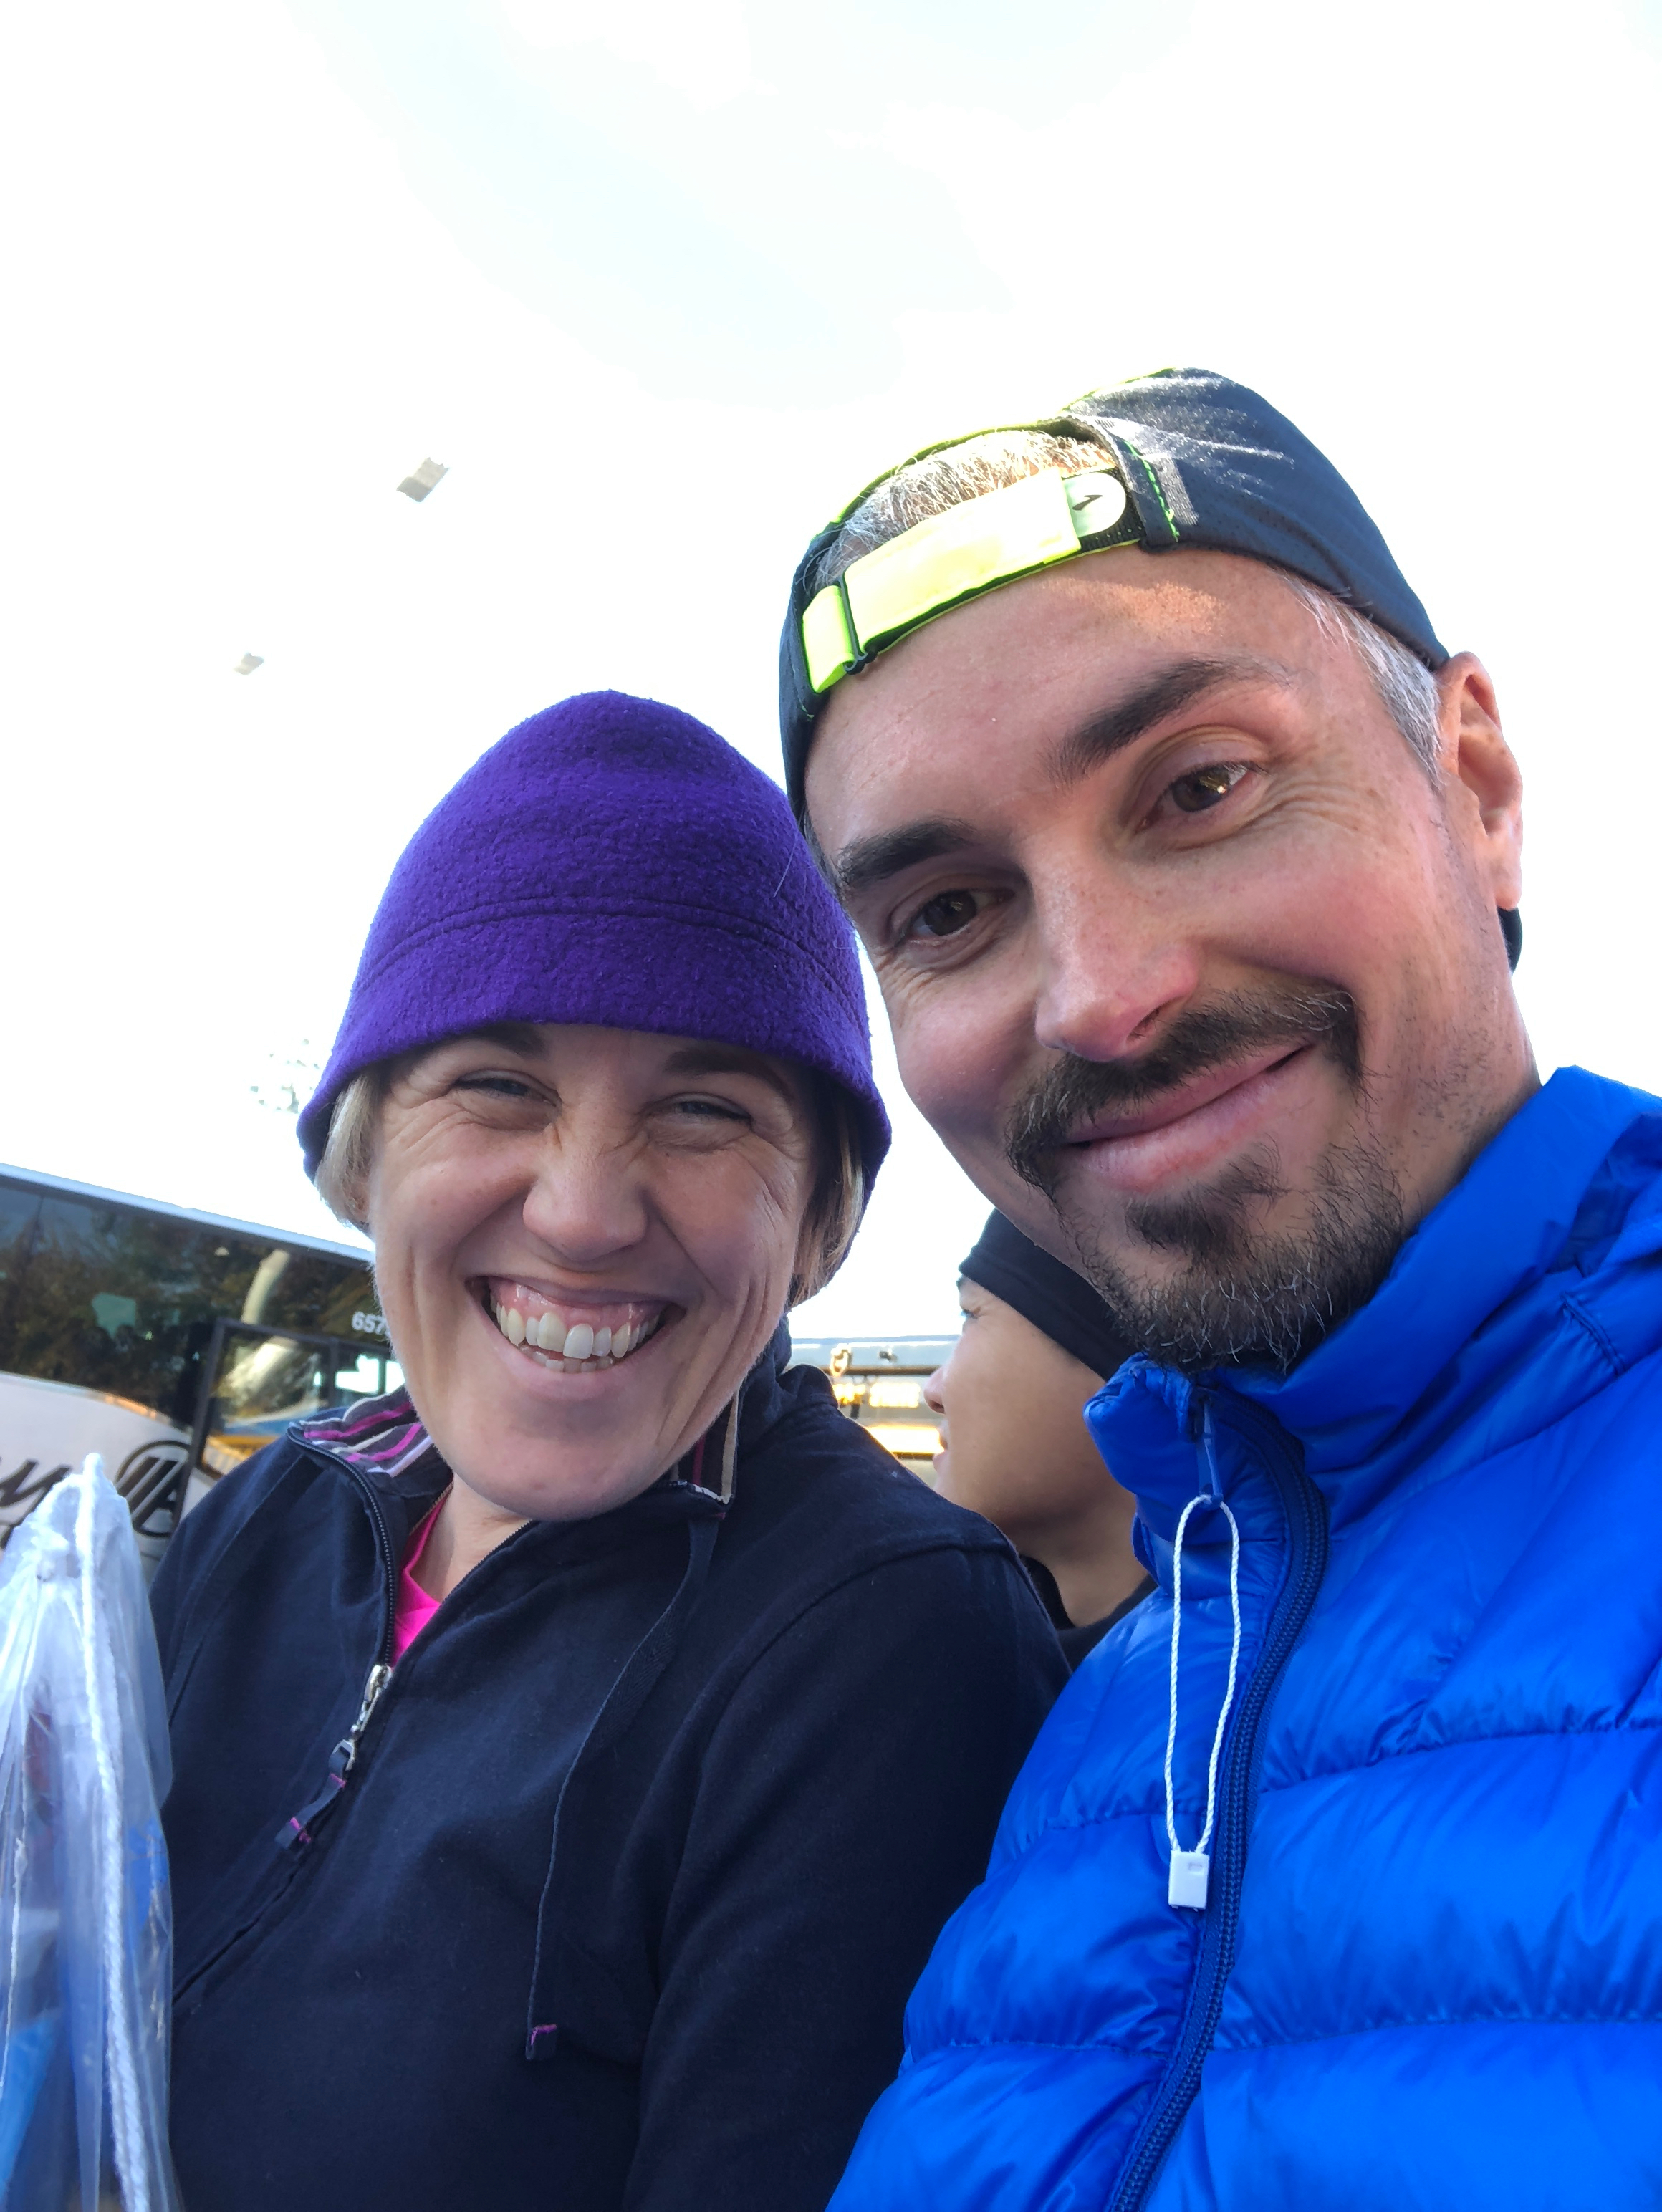 Amand and I - NYC Marathon November 4, 2018